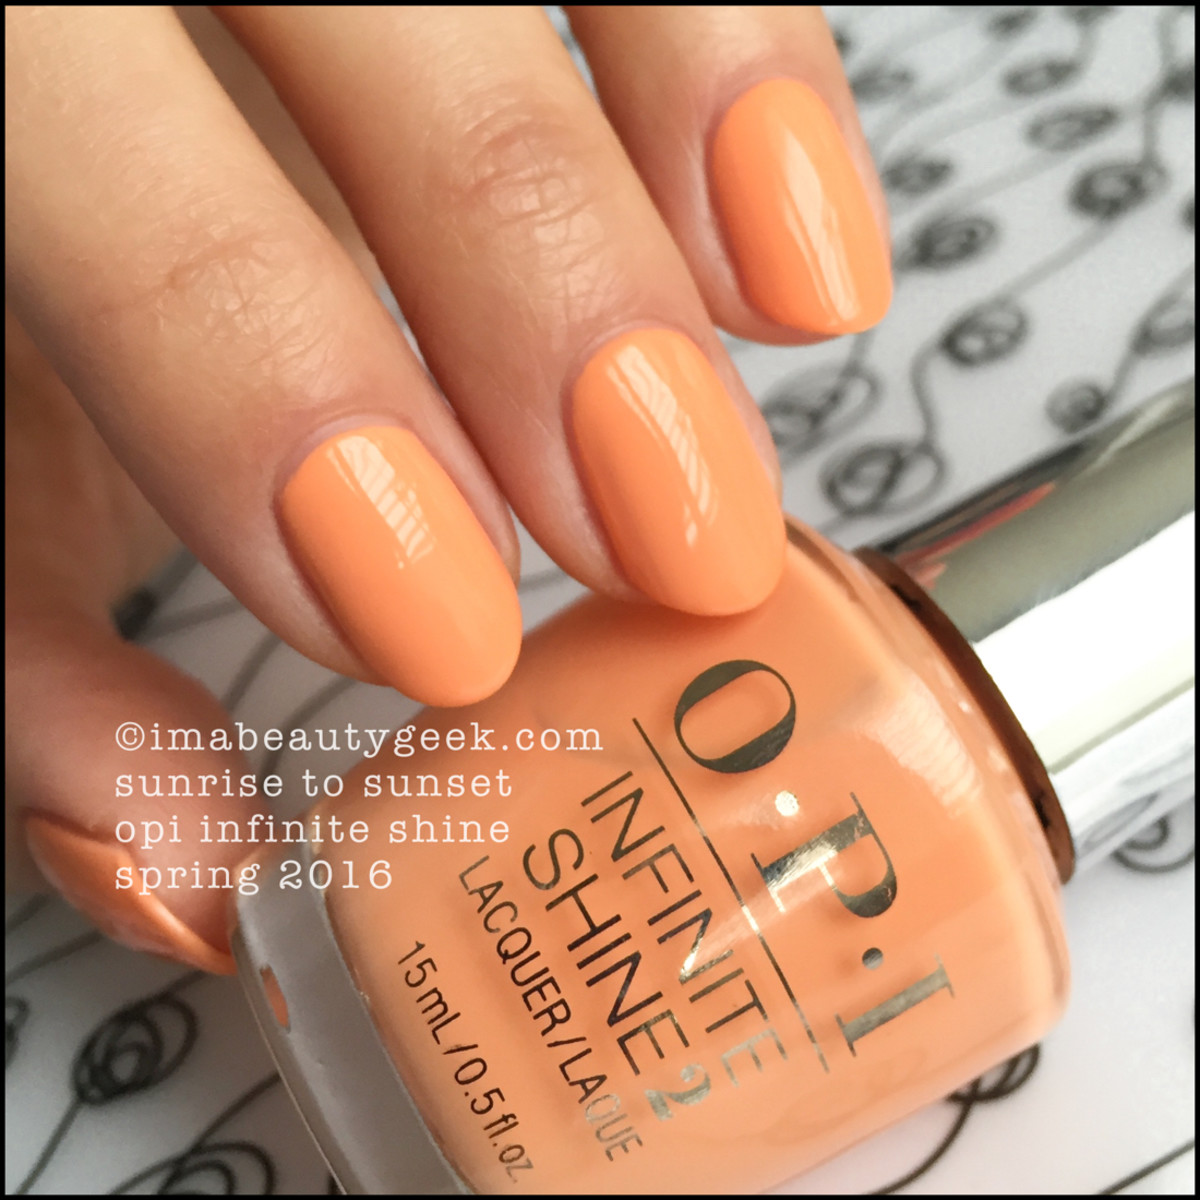 OPI Infinite Shine Swatches_OPI Sunrise To Sunset 2016